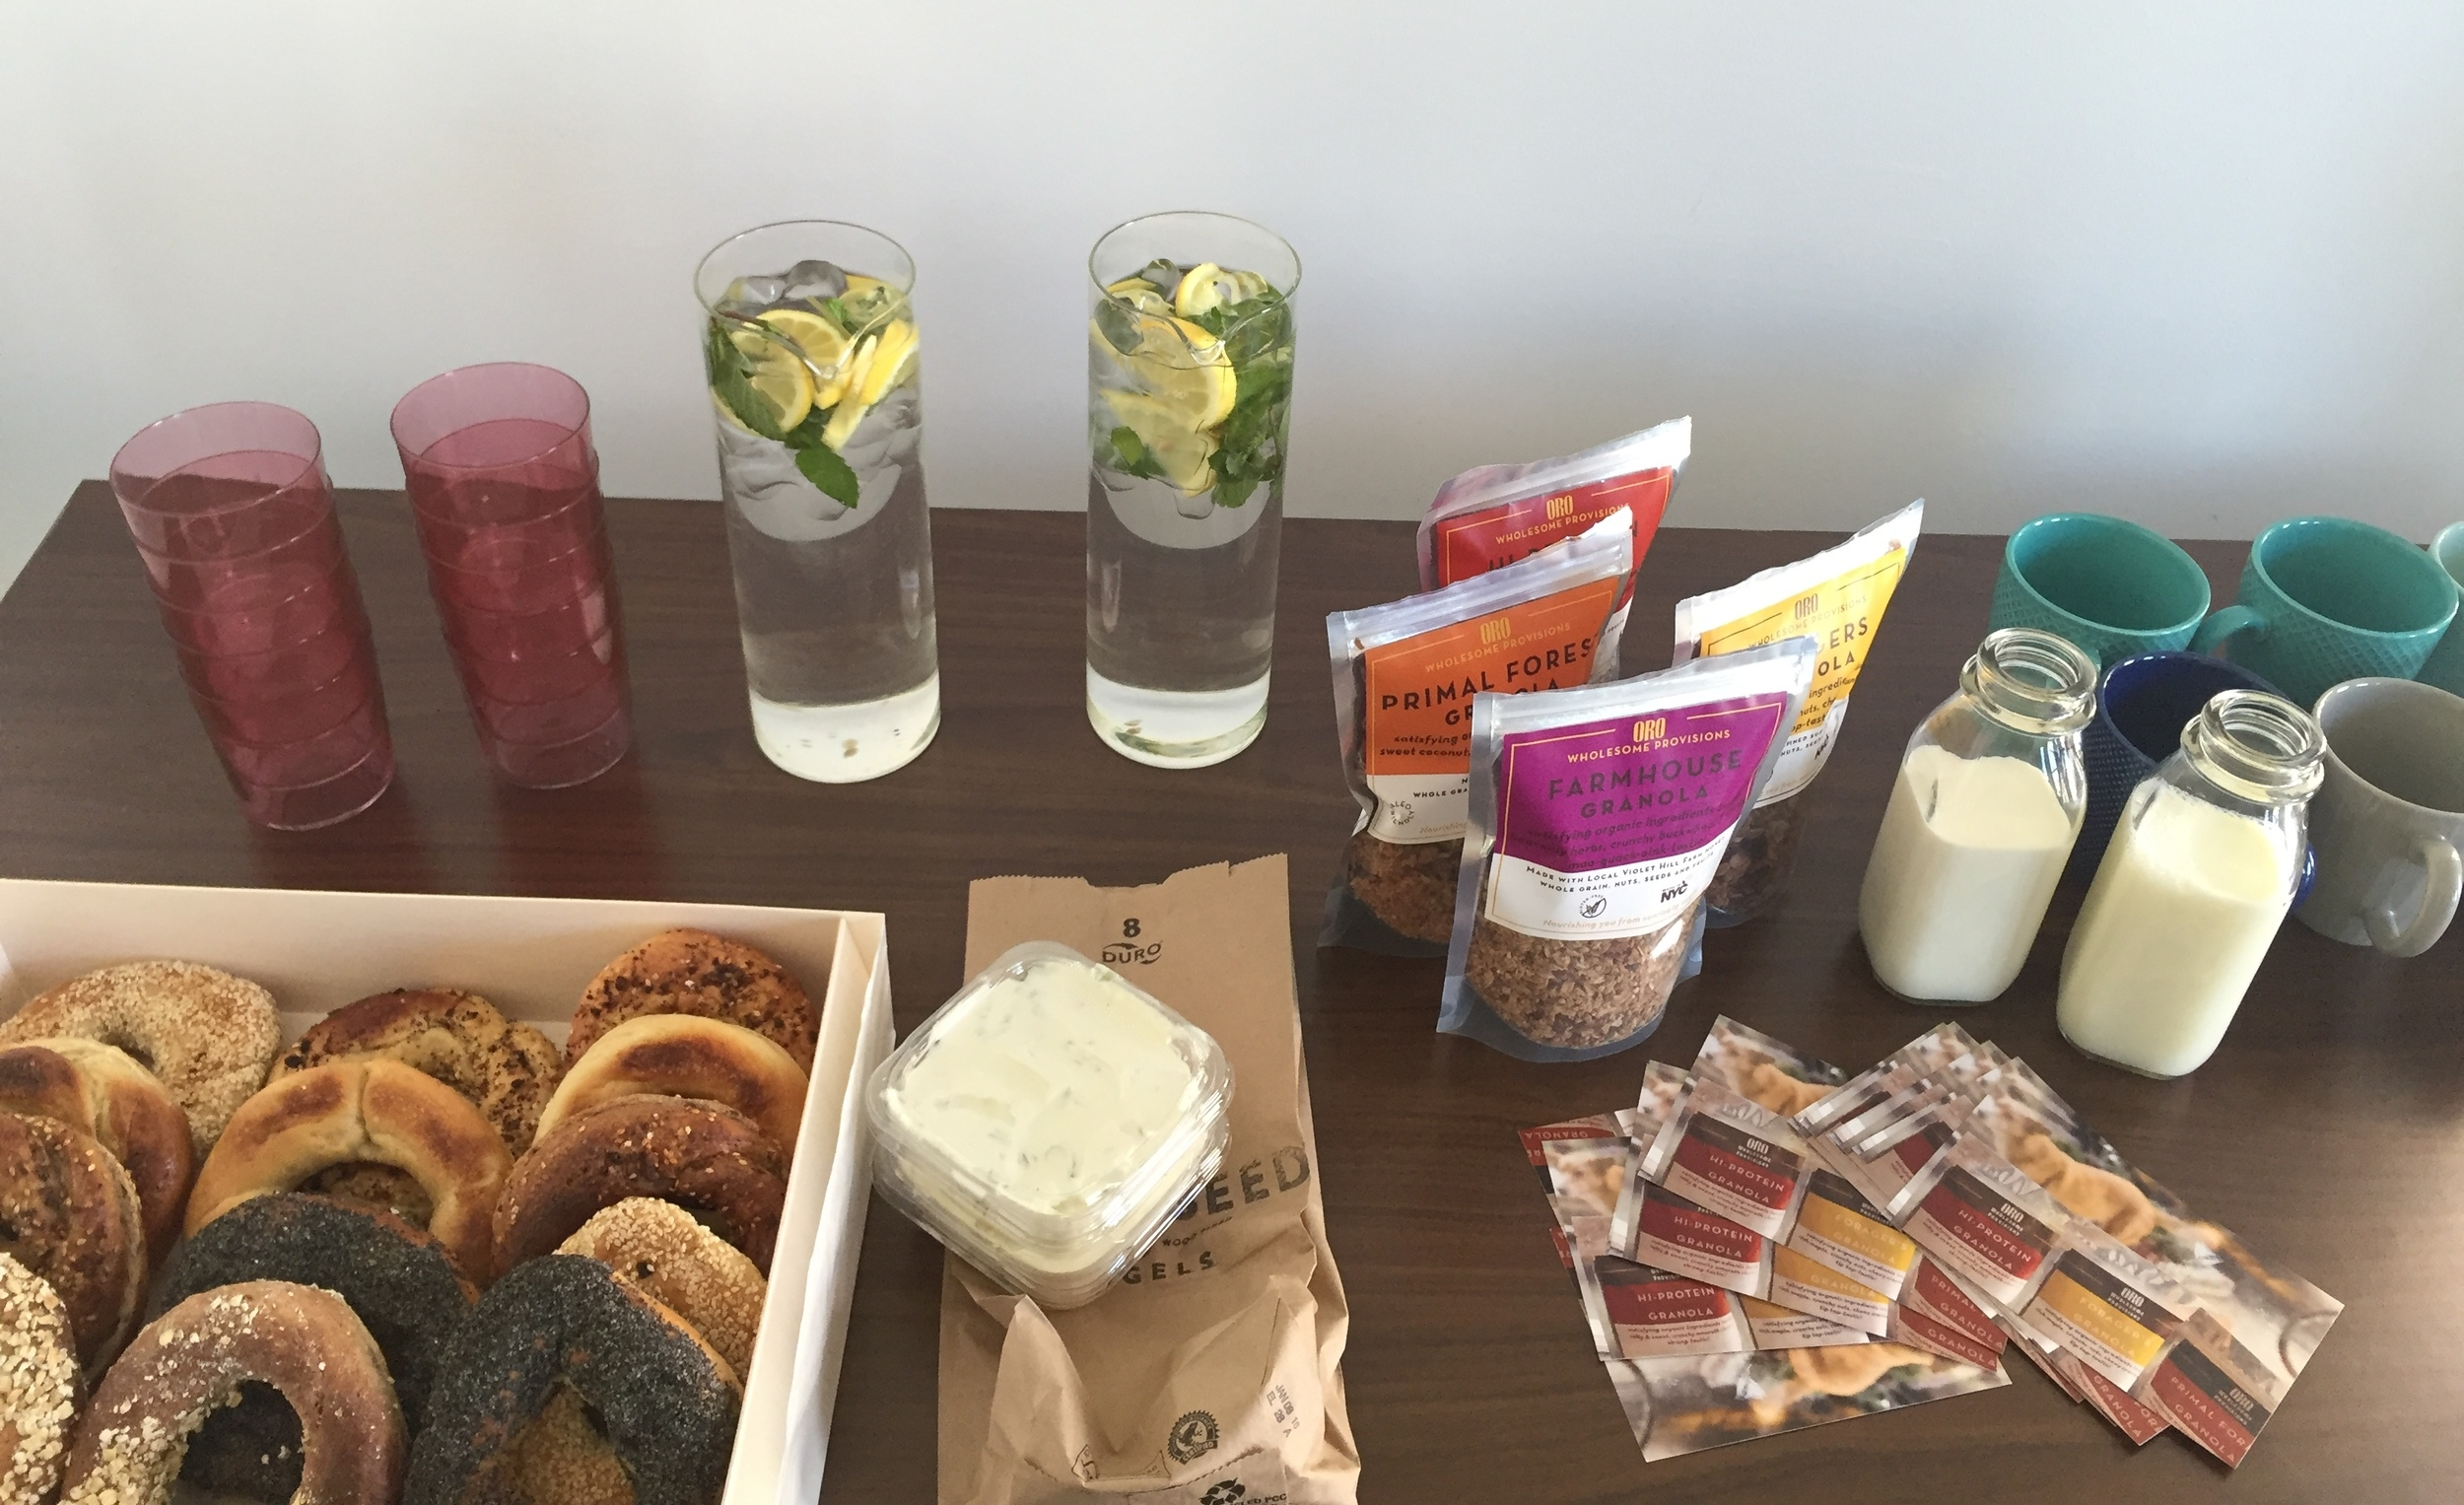 Delicious breakfast from Oro Provisions and BlackSeed thanks to our breakfast sponsor, Vanilla !